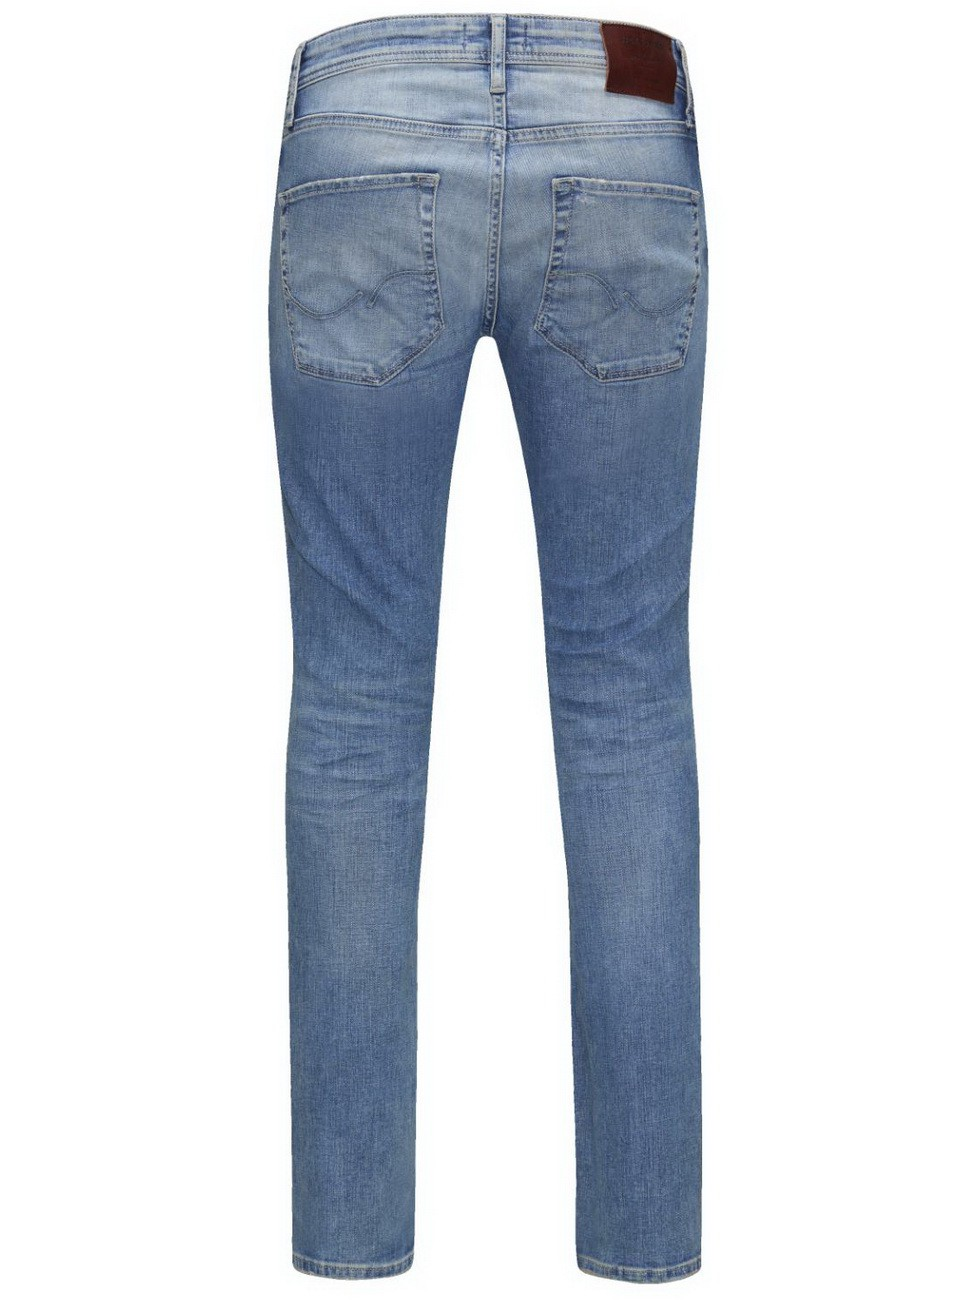 Jack & Jones Herren Jeans JJITIM ORIGINAL JJ 925 Slim Fit - Blau - Blue Denim